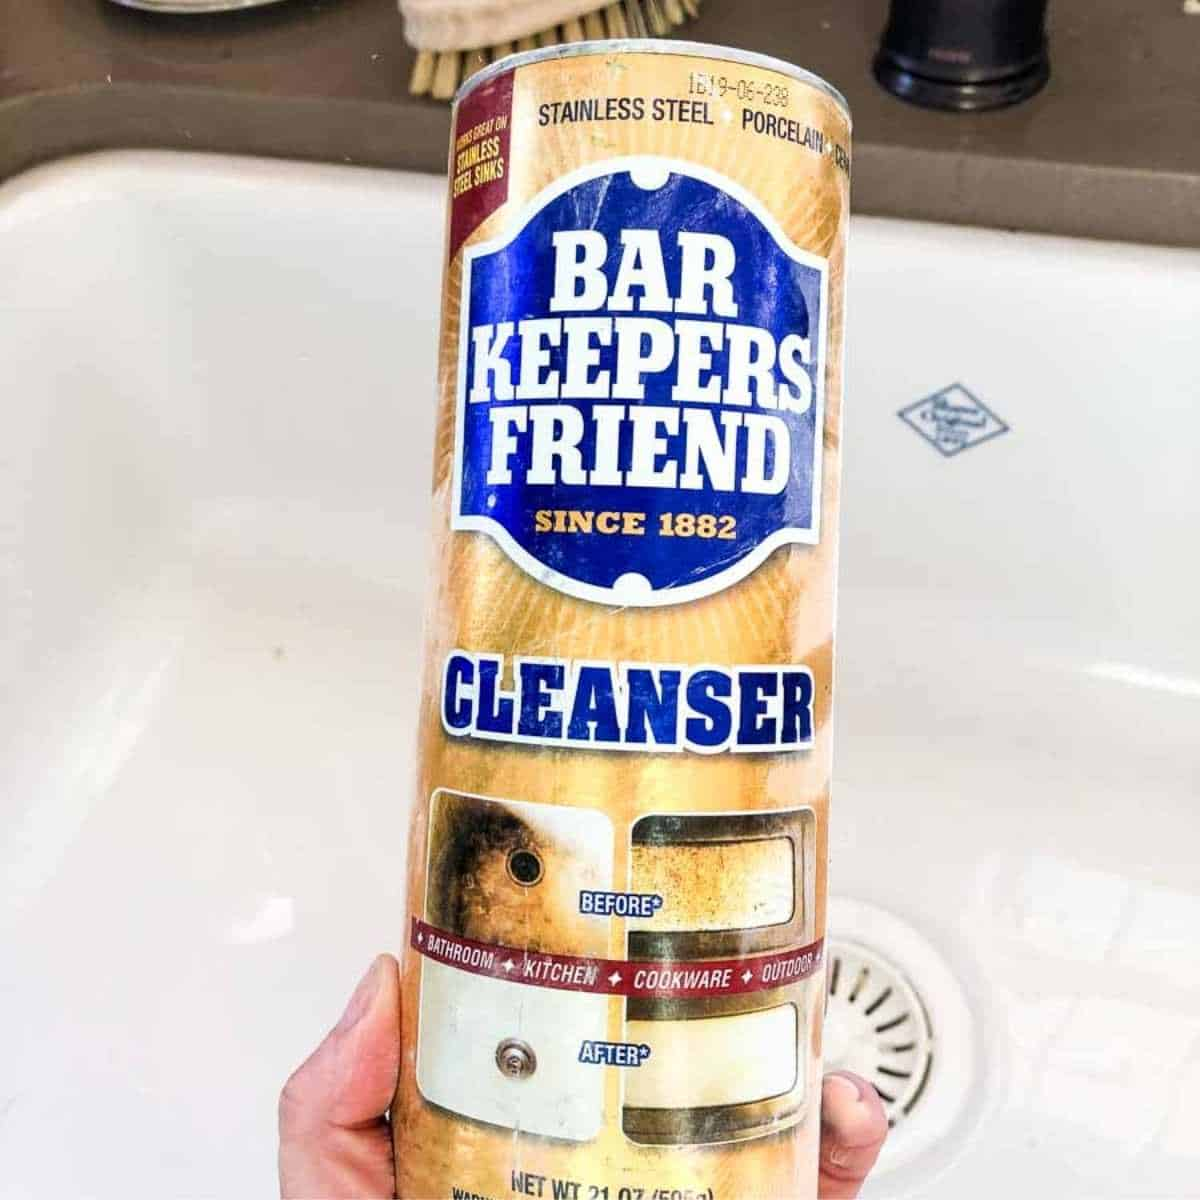 hand holding bar keepers friend container, white sink in background